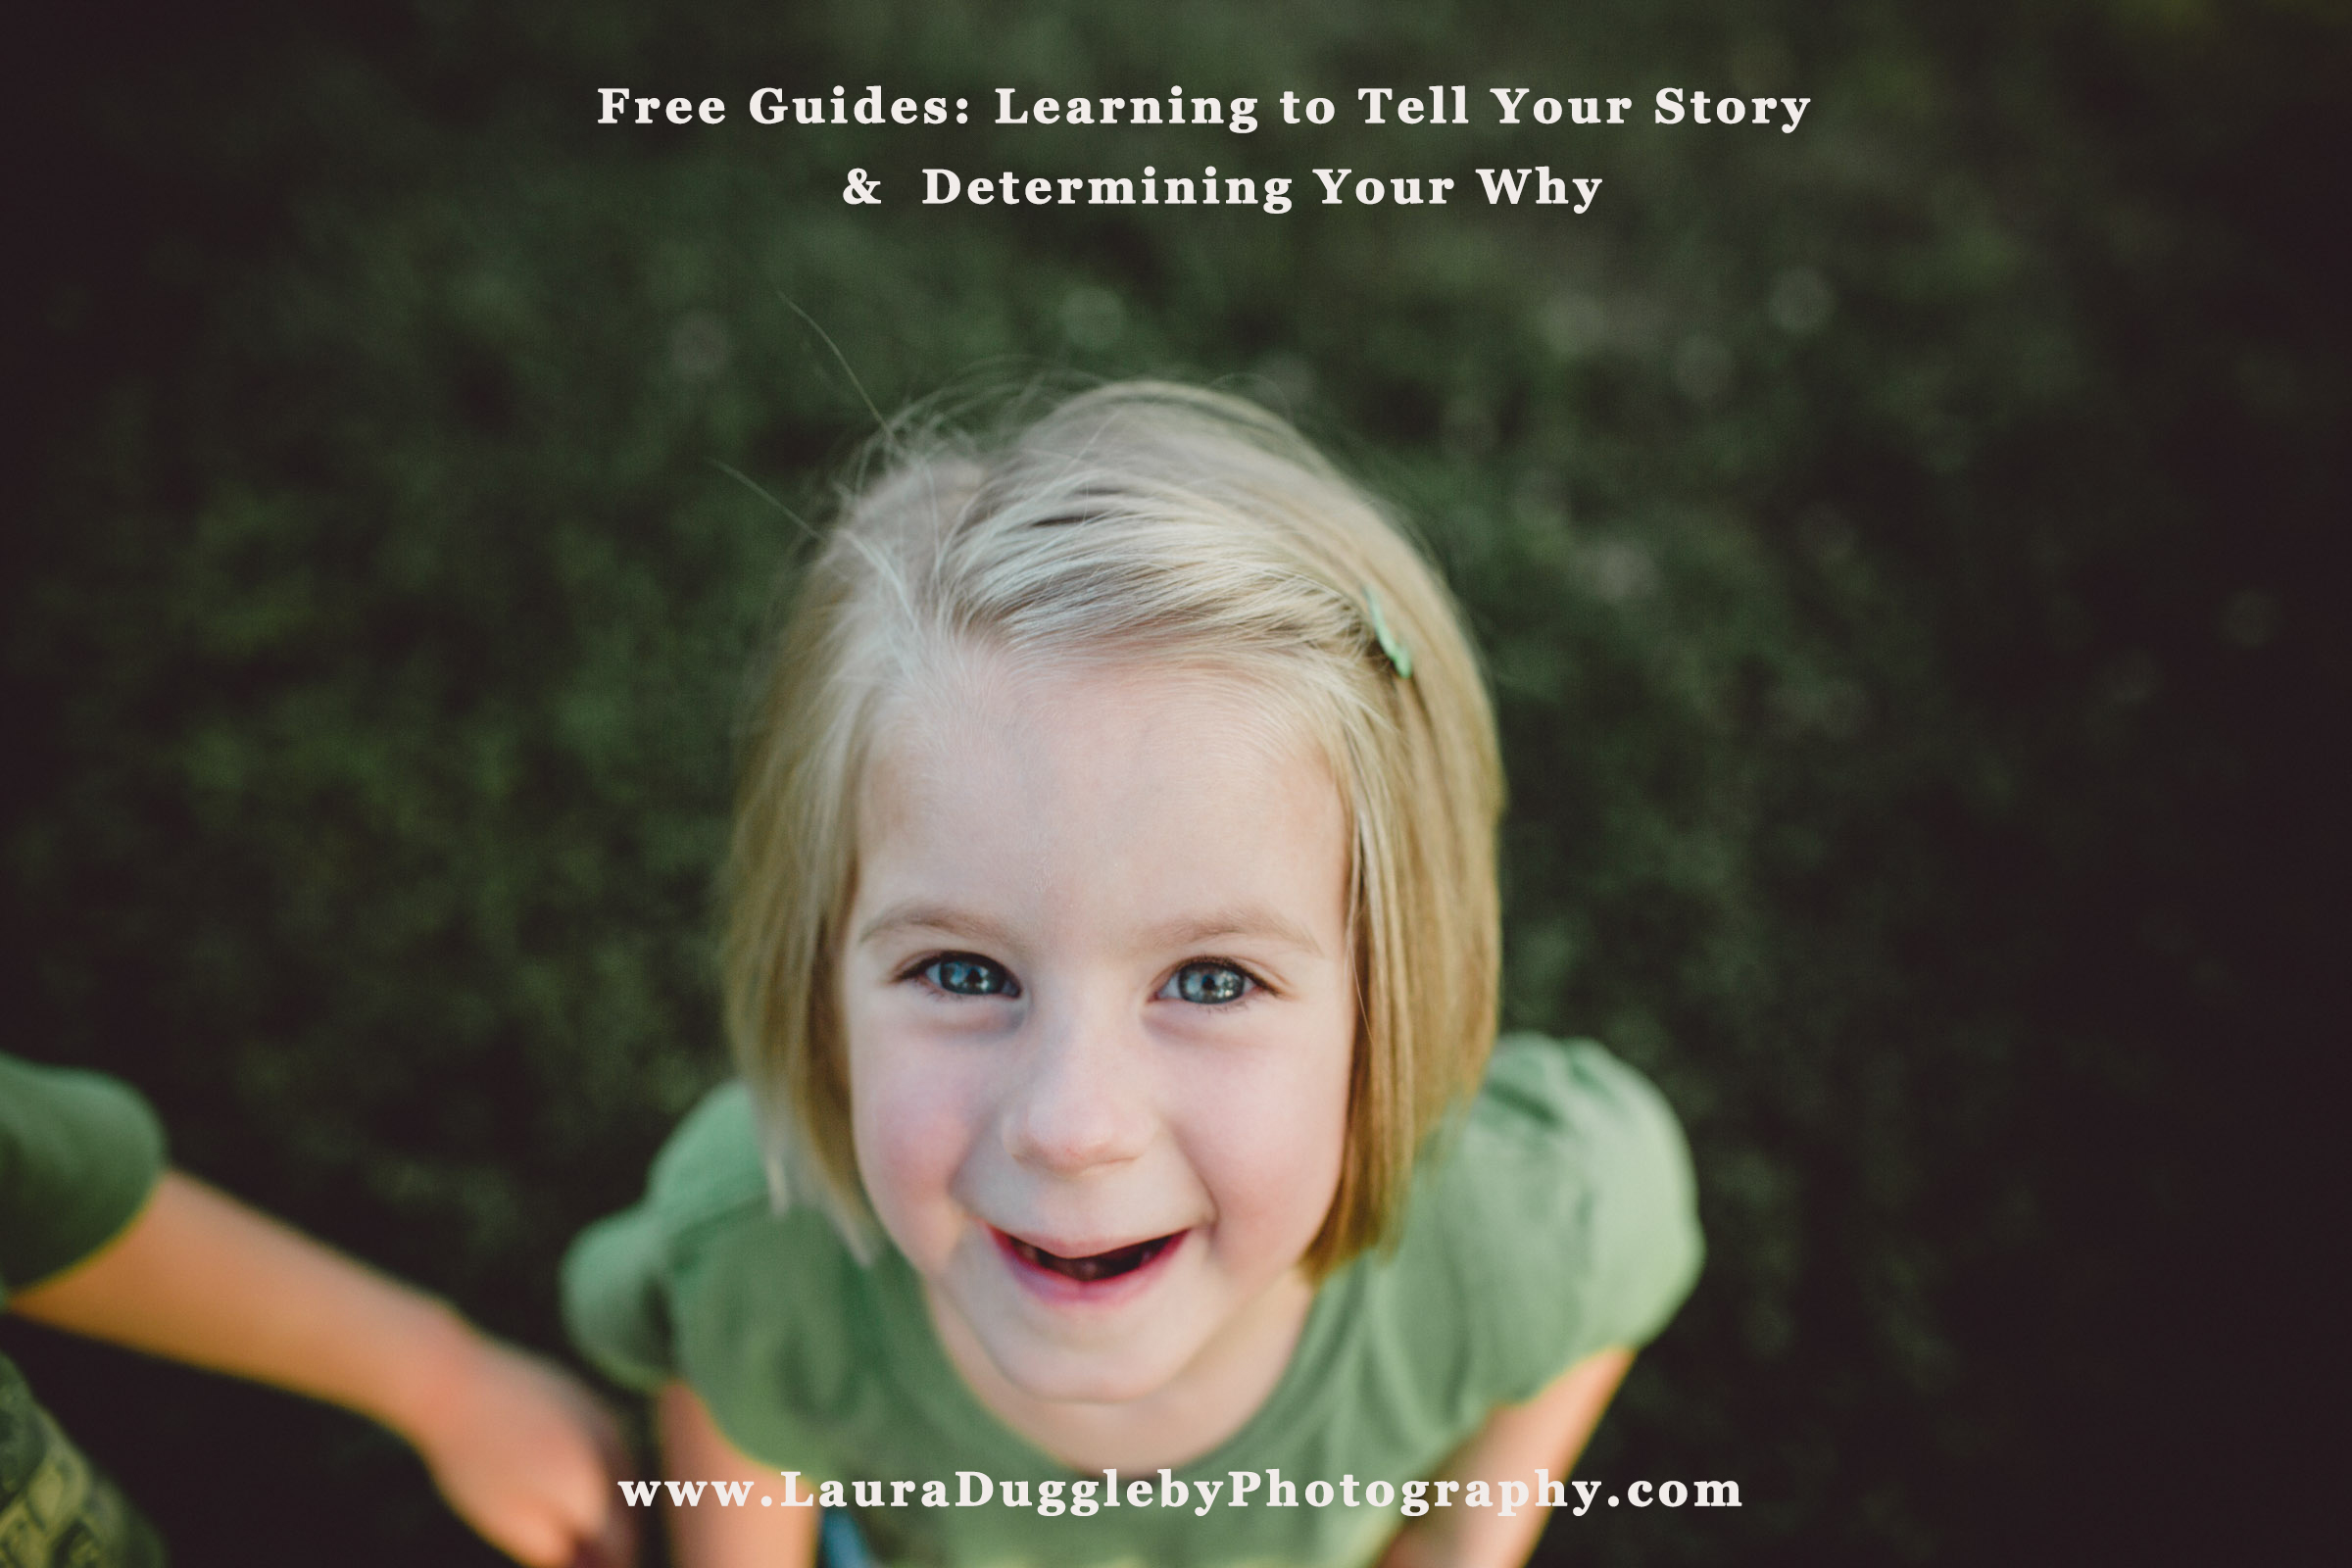 Free Guide-telling your story-1.JPG